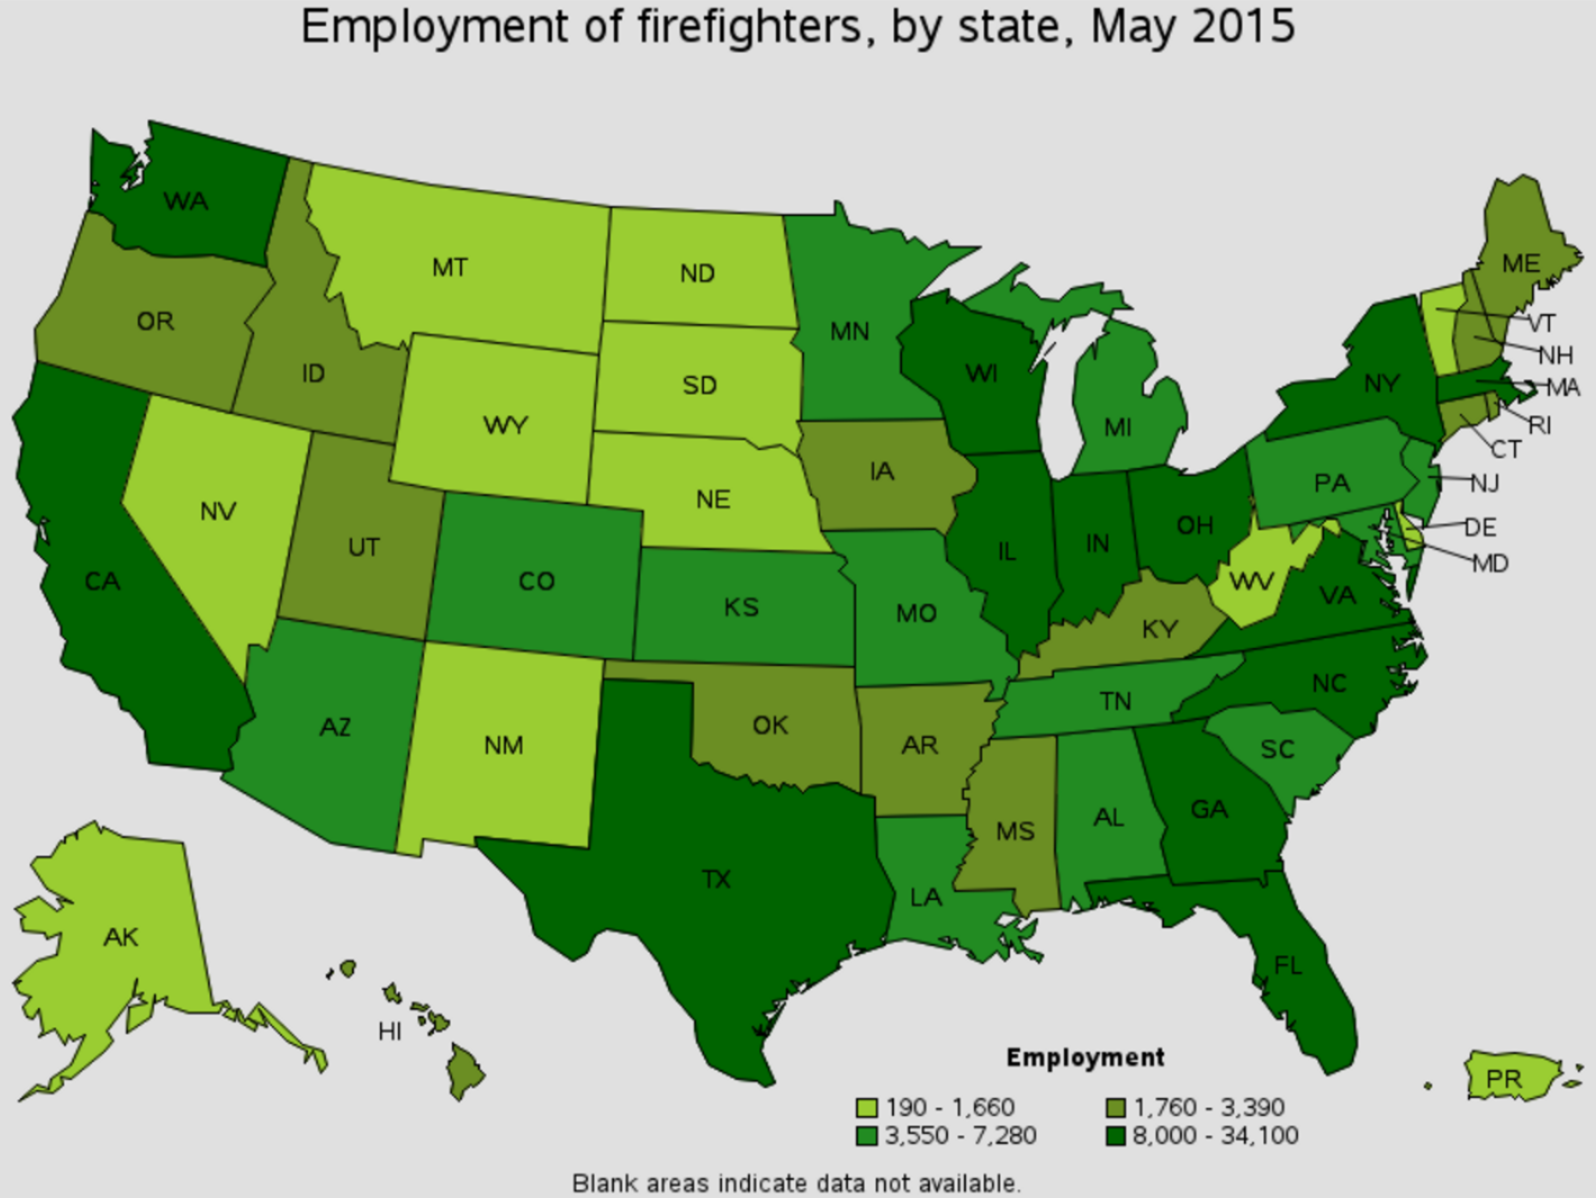 firefighter job outlook by state Wynona Oklahoma